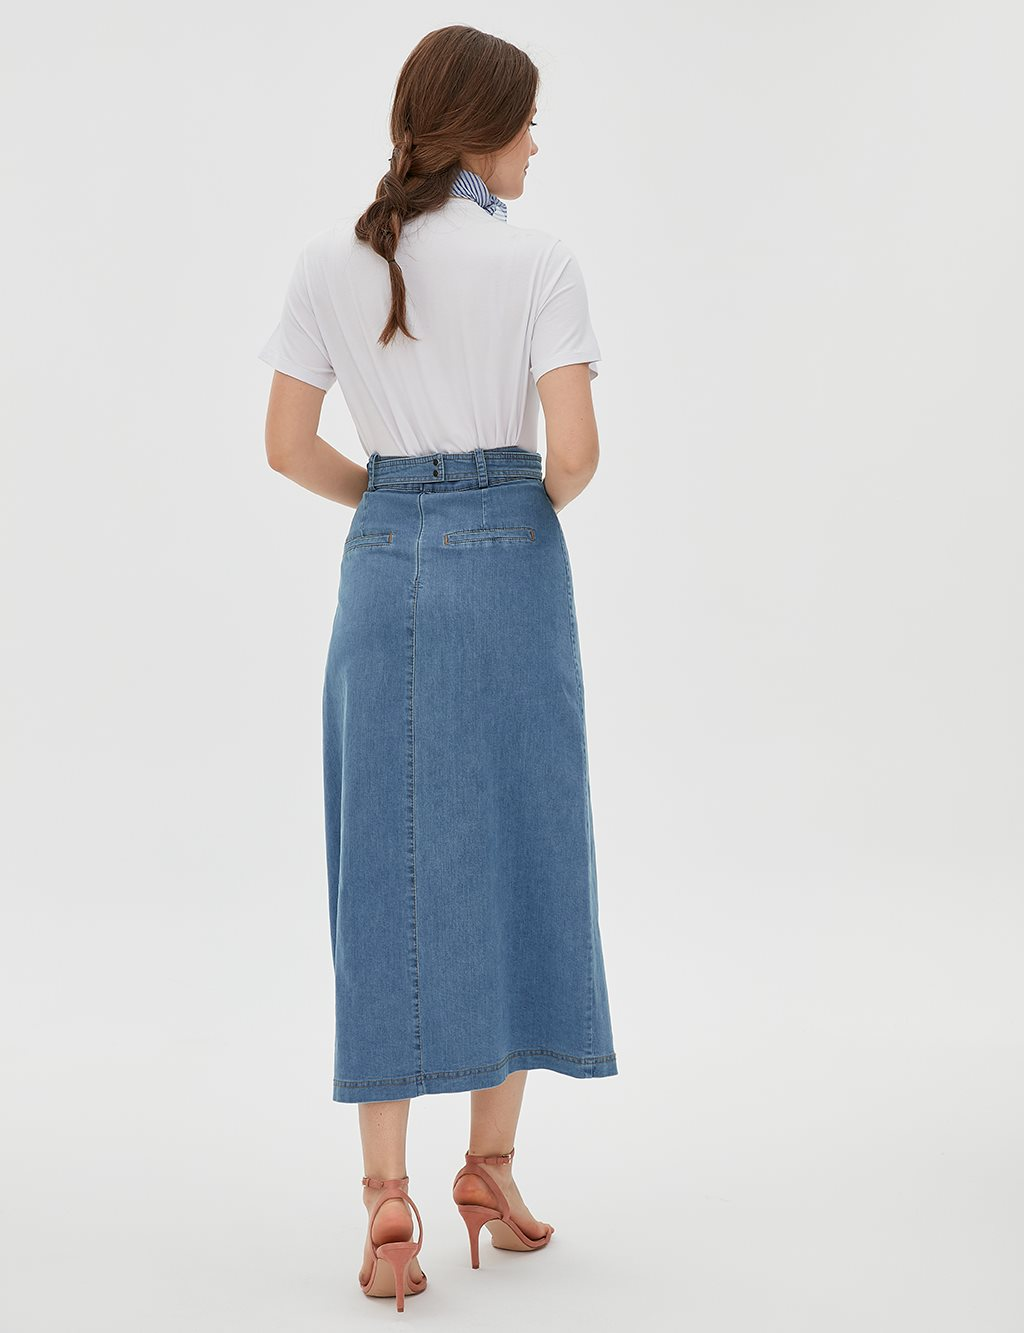 KYR Pocket Detailed Denim Skirt B20 72007 Blue